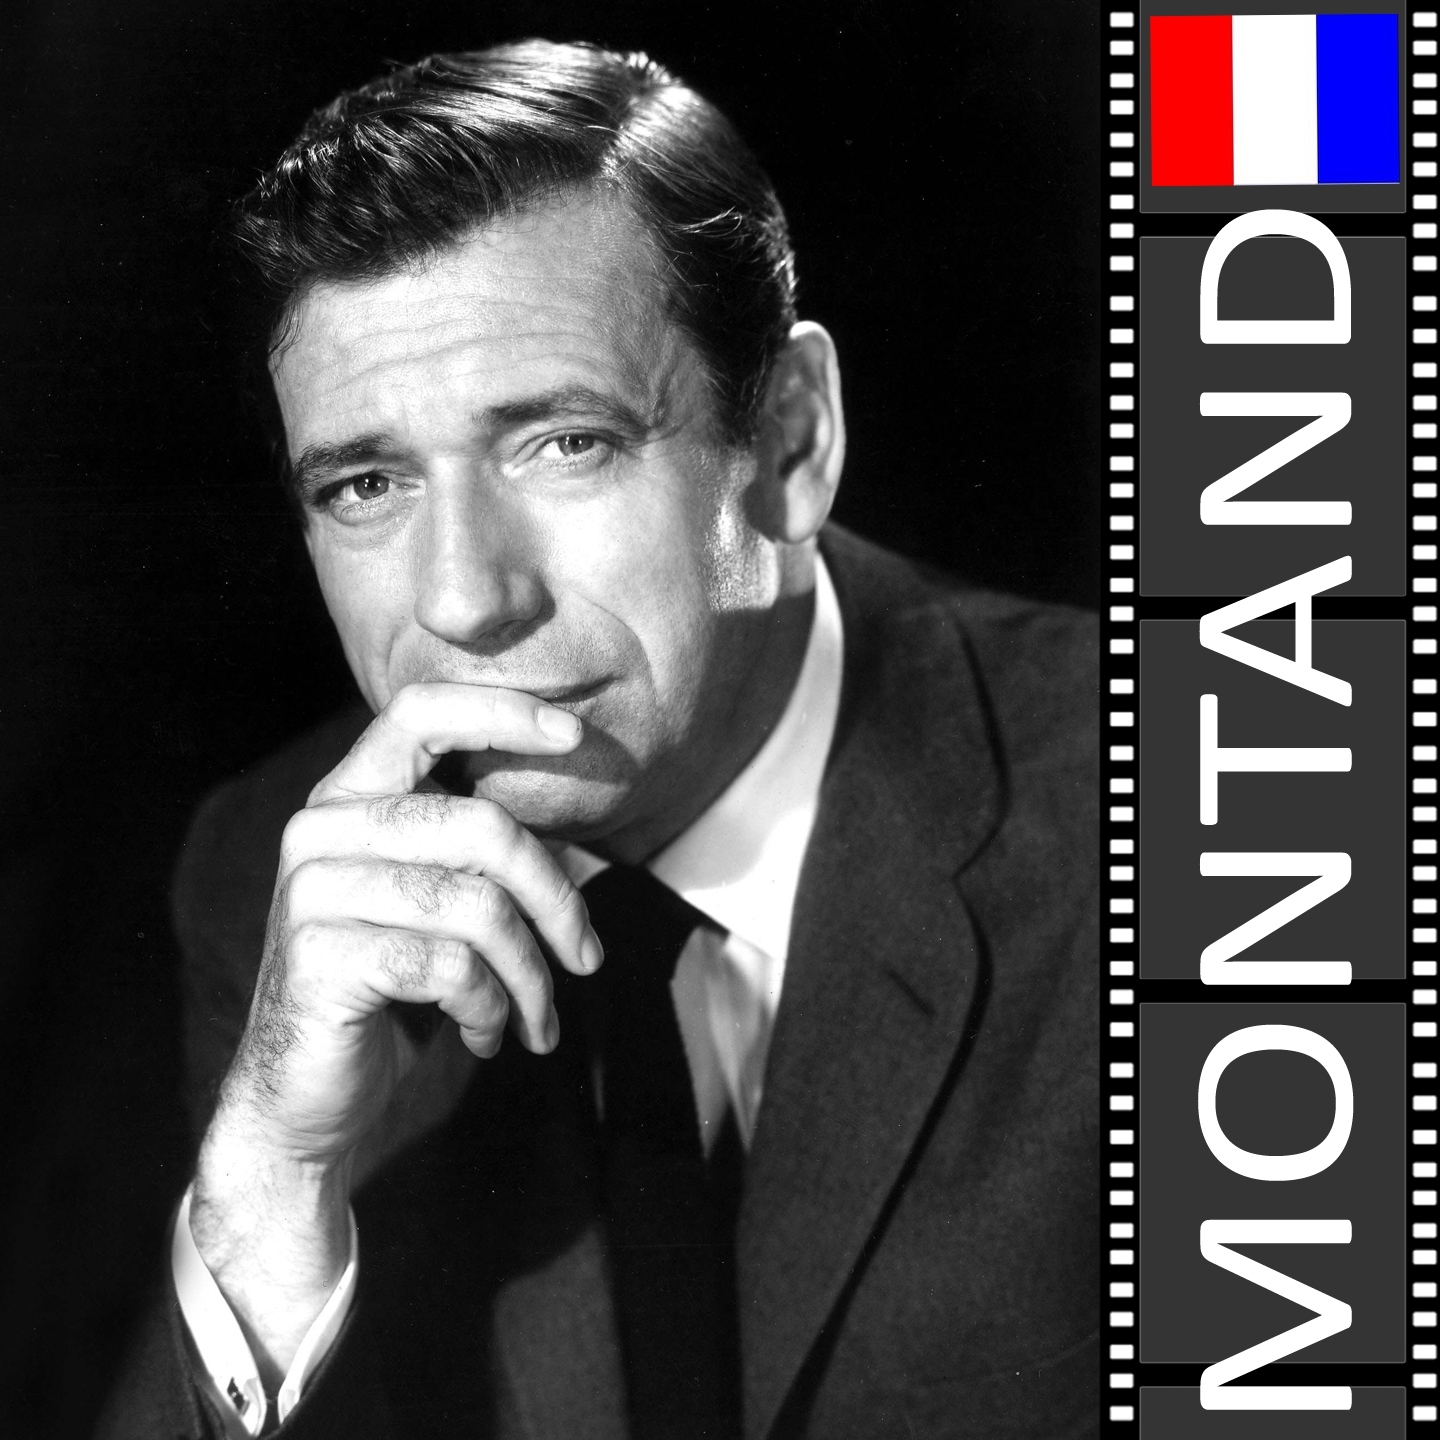 Yves Montand : Les feuilles mortes